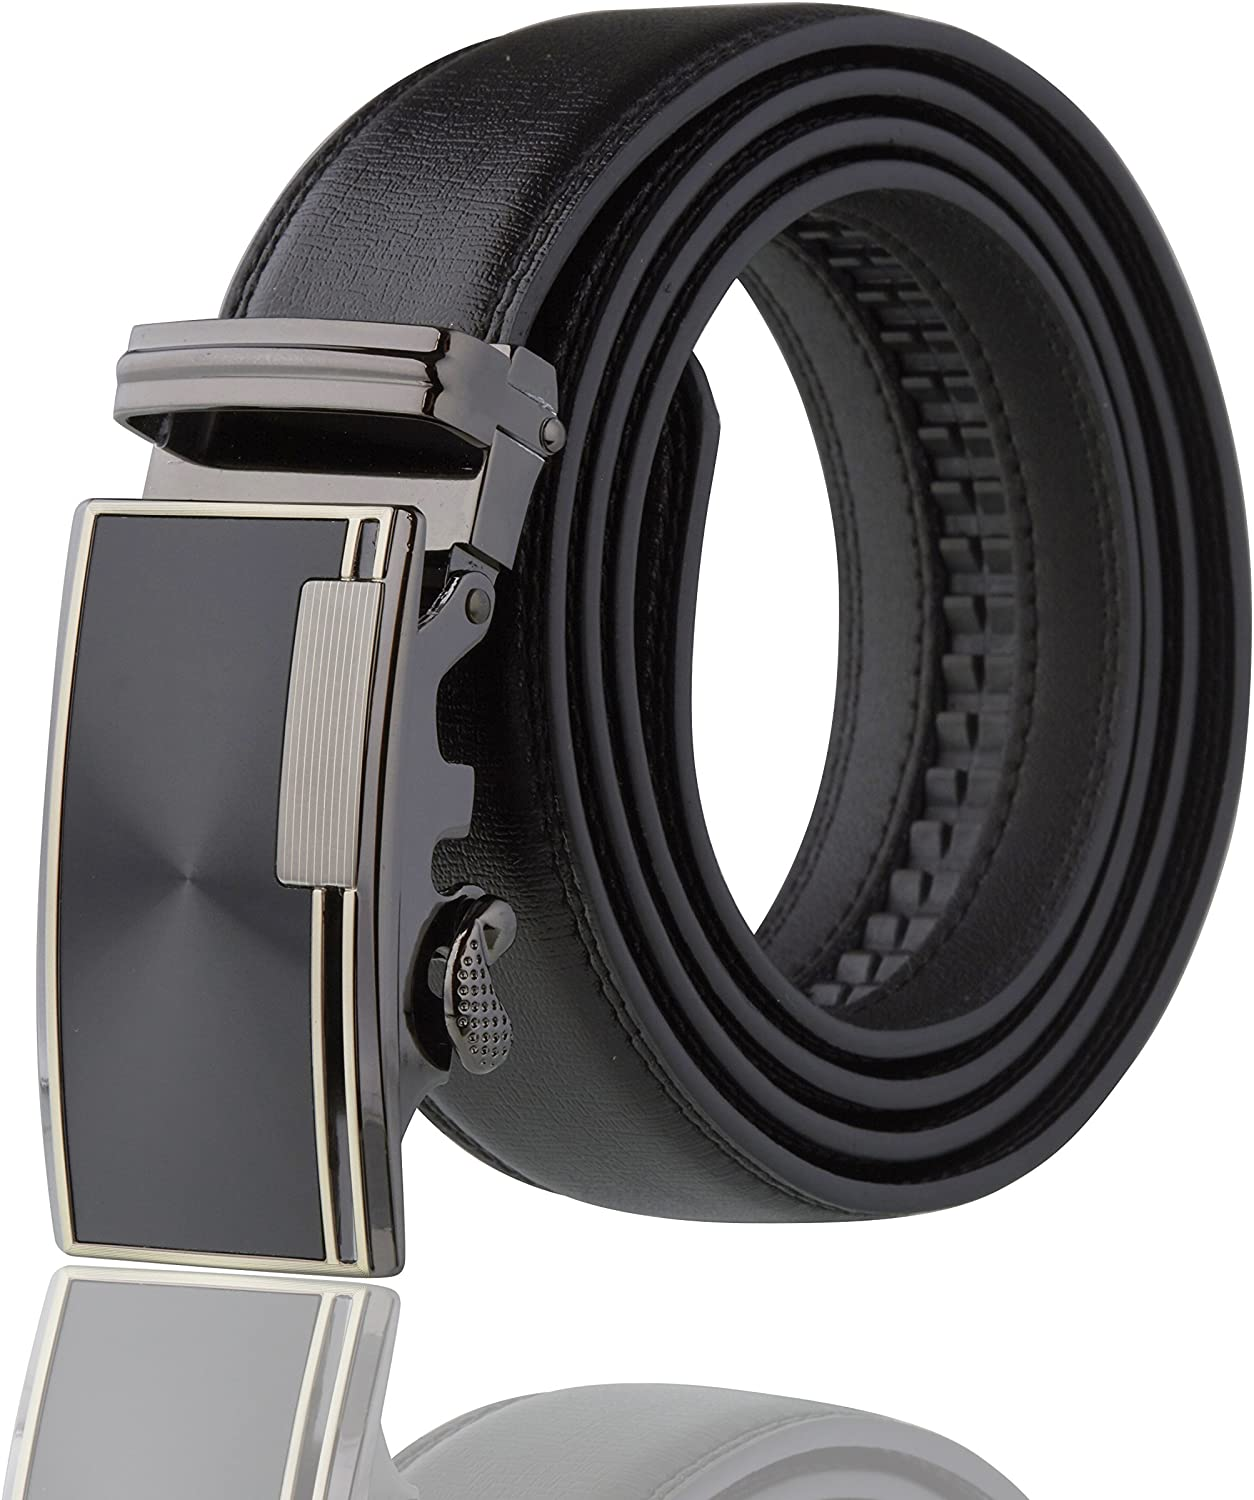 Imperial Men's Ratchet Leather Dress Belt With Gift Box